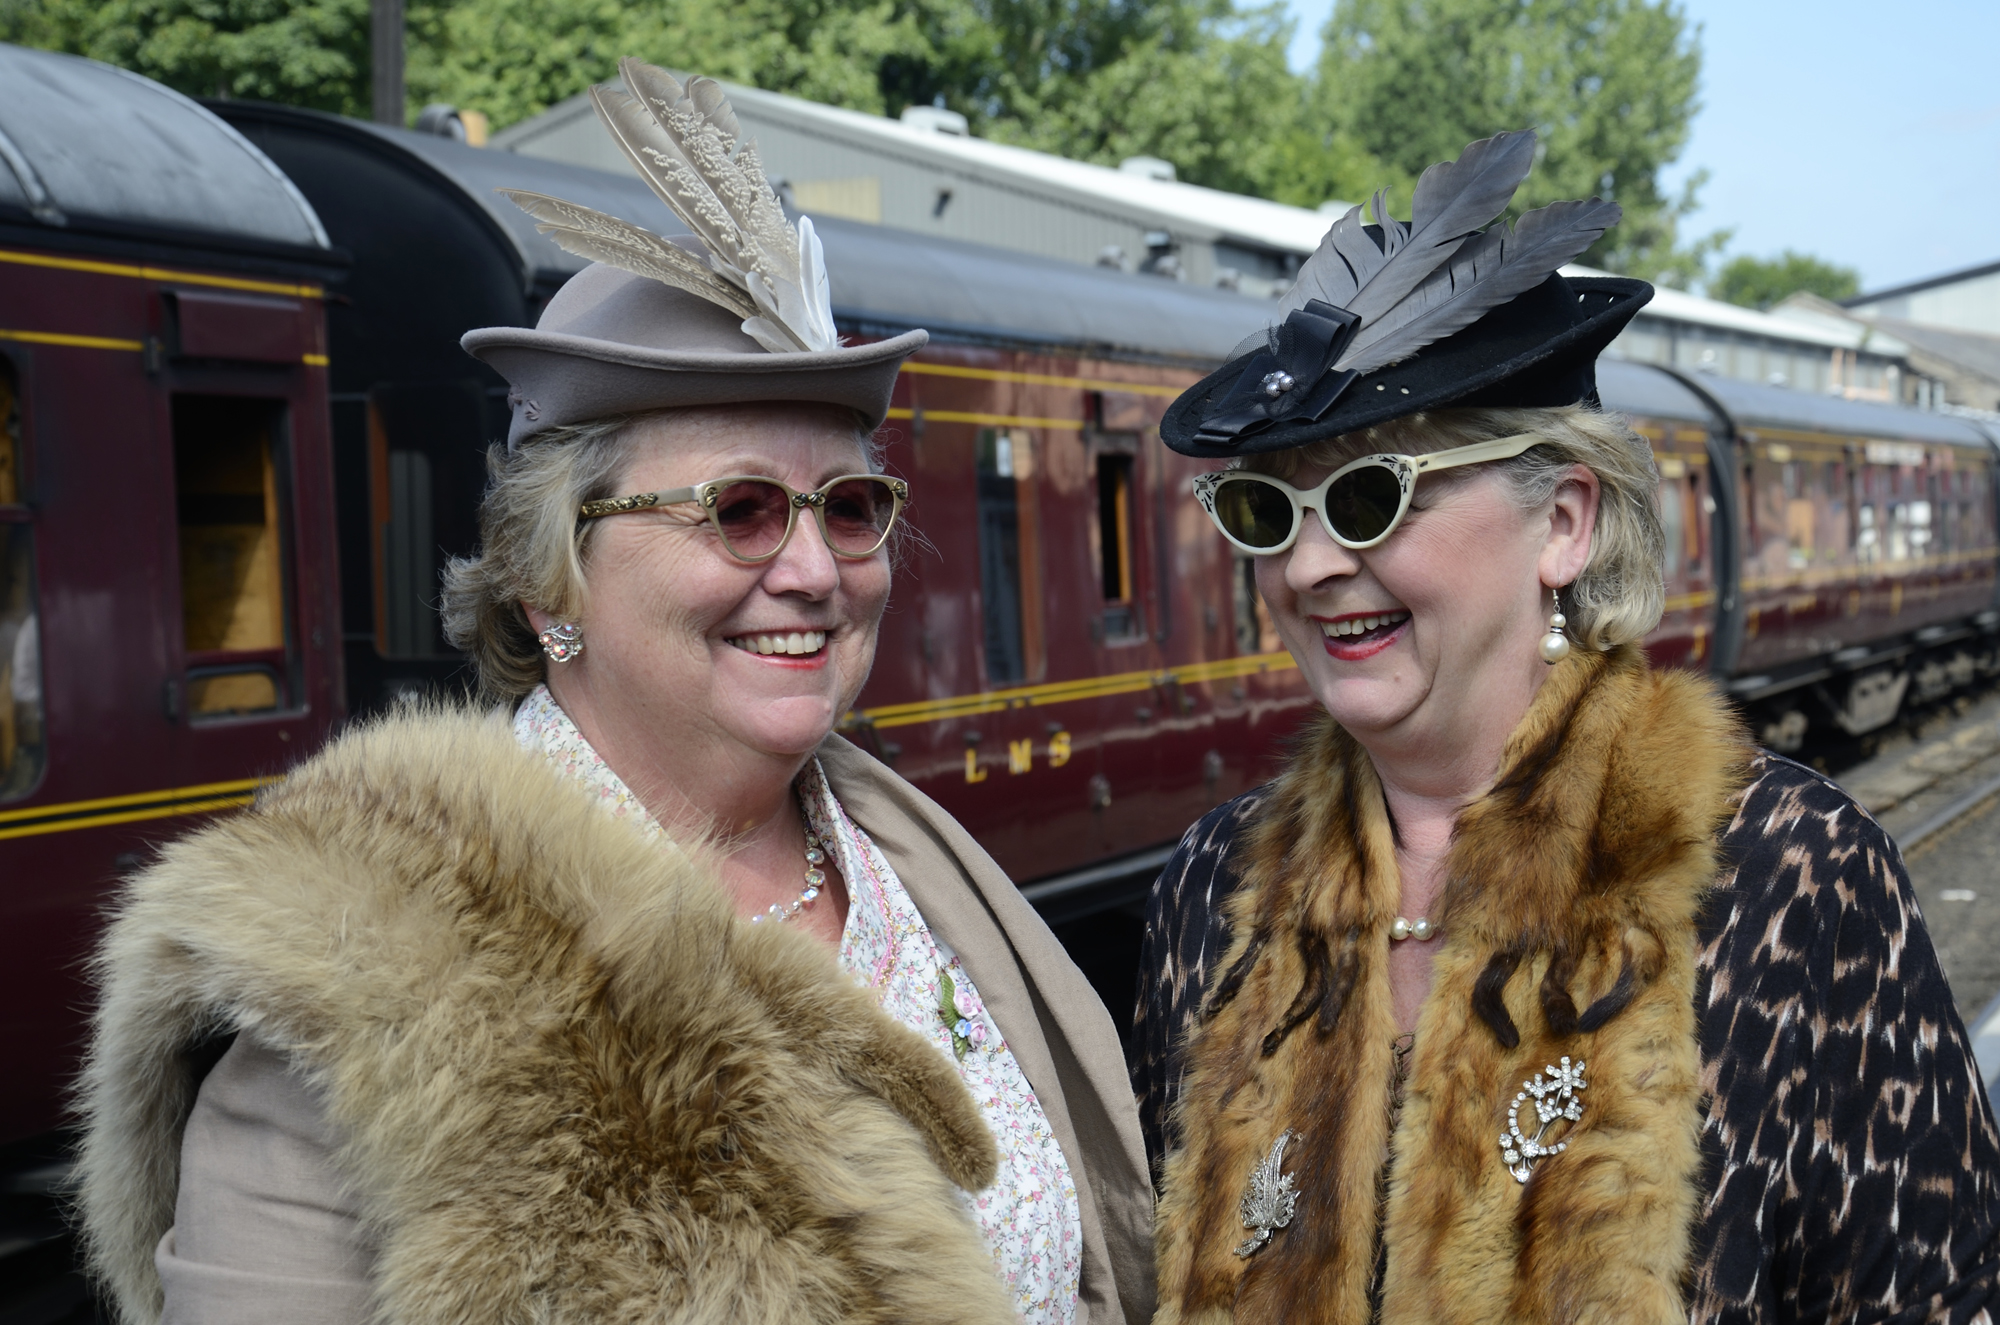 VINTAGE EVENTS: The Step Back to the 1940s weekends will take place at Severn Valley Railway.